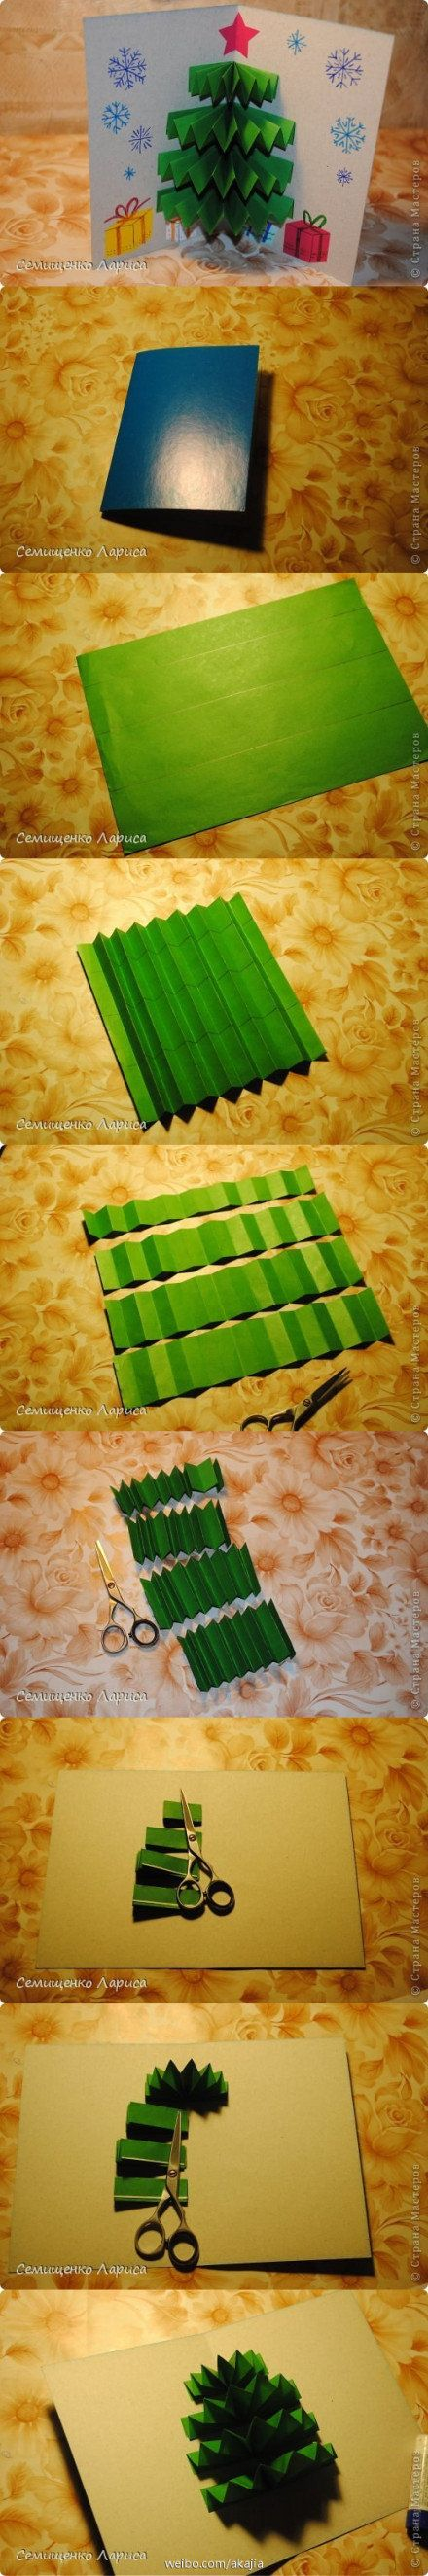 diy-pop-up-christmas-tree-card Step by step Christmas Tree Crafts for Kids to Make